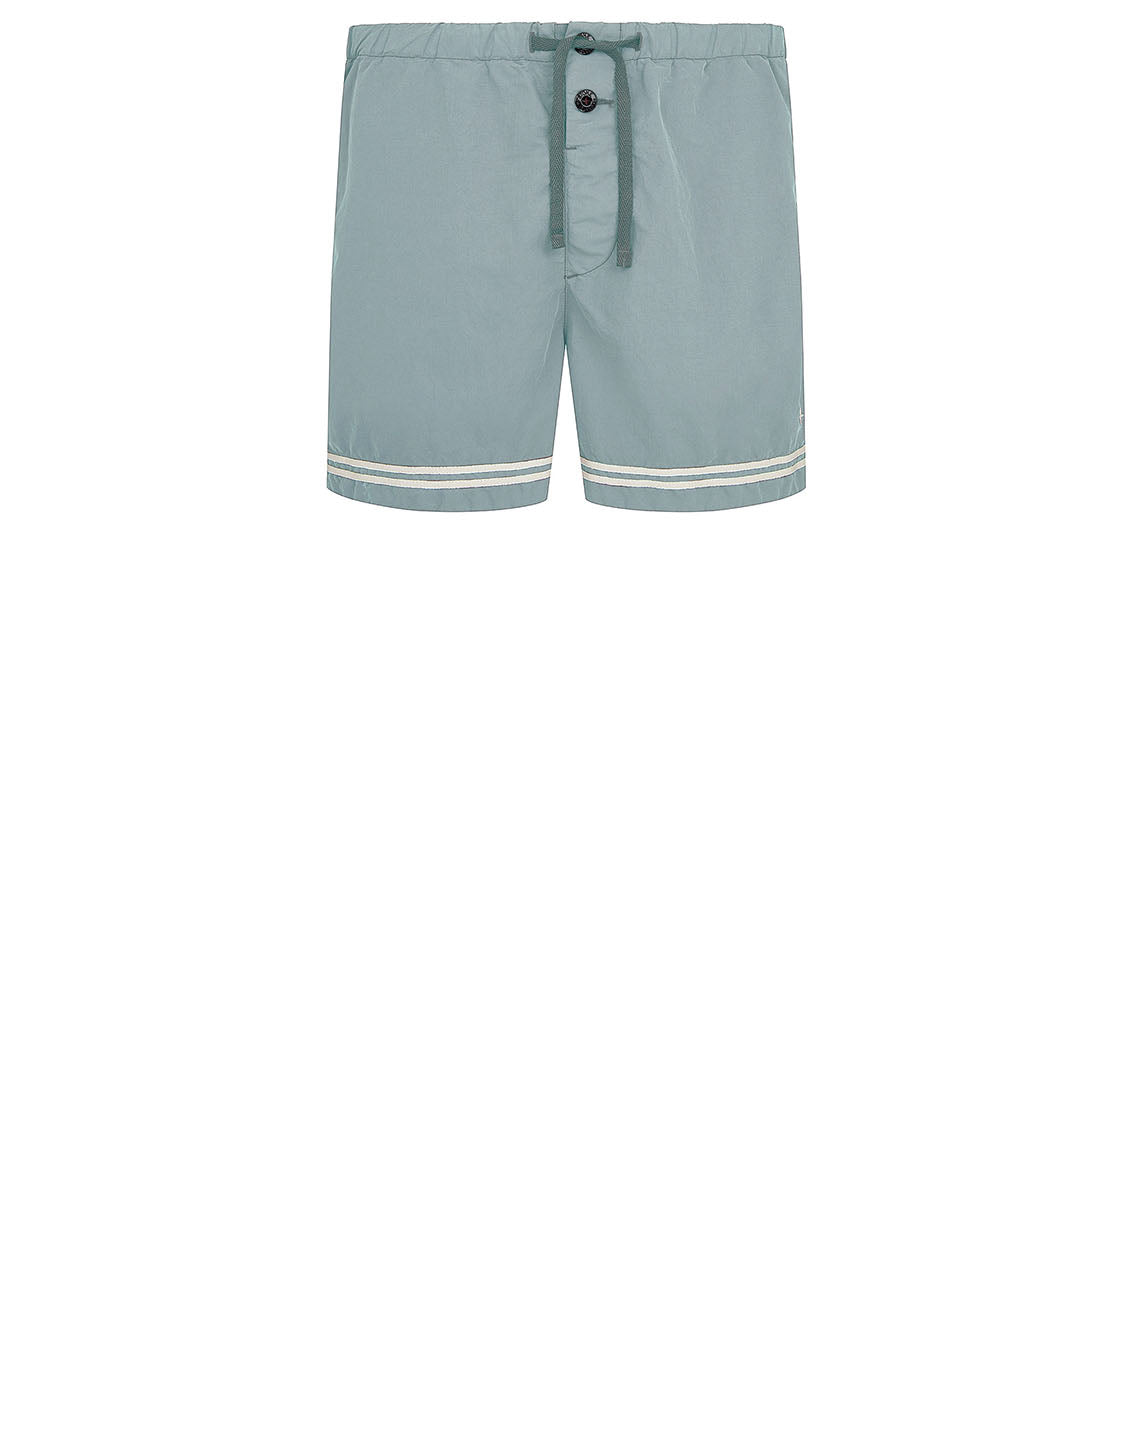 B0146 Shorts in Sky Blue